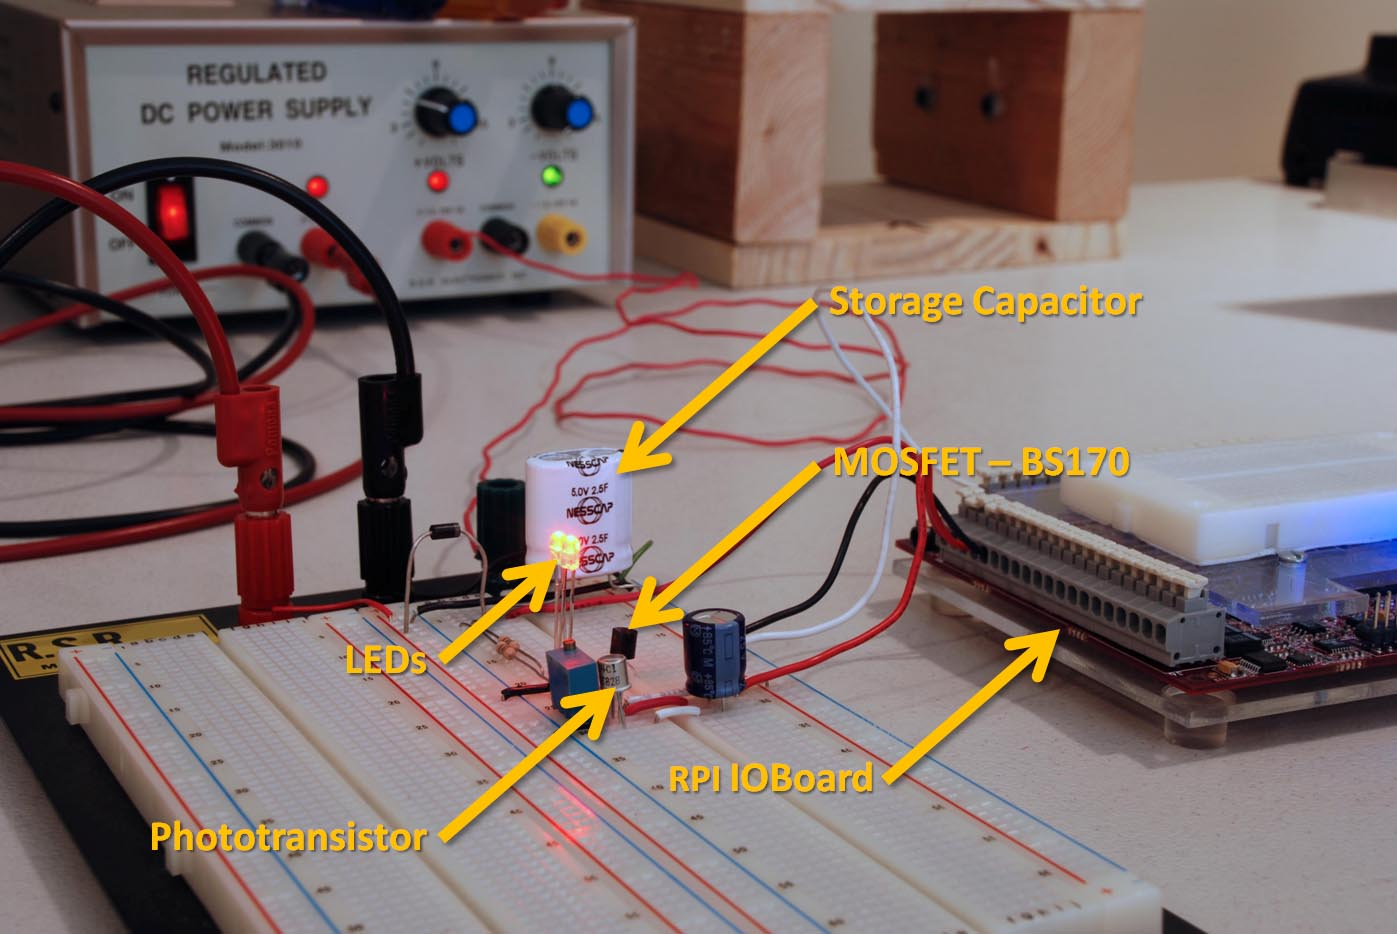 So You Want To Use Pwm Eh Non Lexical Vocables First I Connected 1 Supercap And The Led Resistor Into Circuit Heart Of This Test Is Fairly Simple Two Bright Red Leds Model Ovlbr4c7 Along With 92 Current Limiting Resistors Controlled By A Bs170